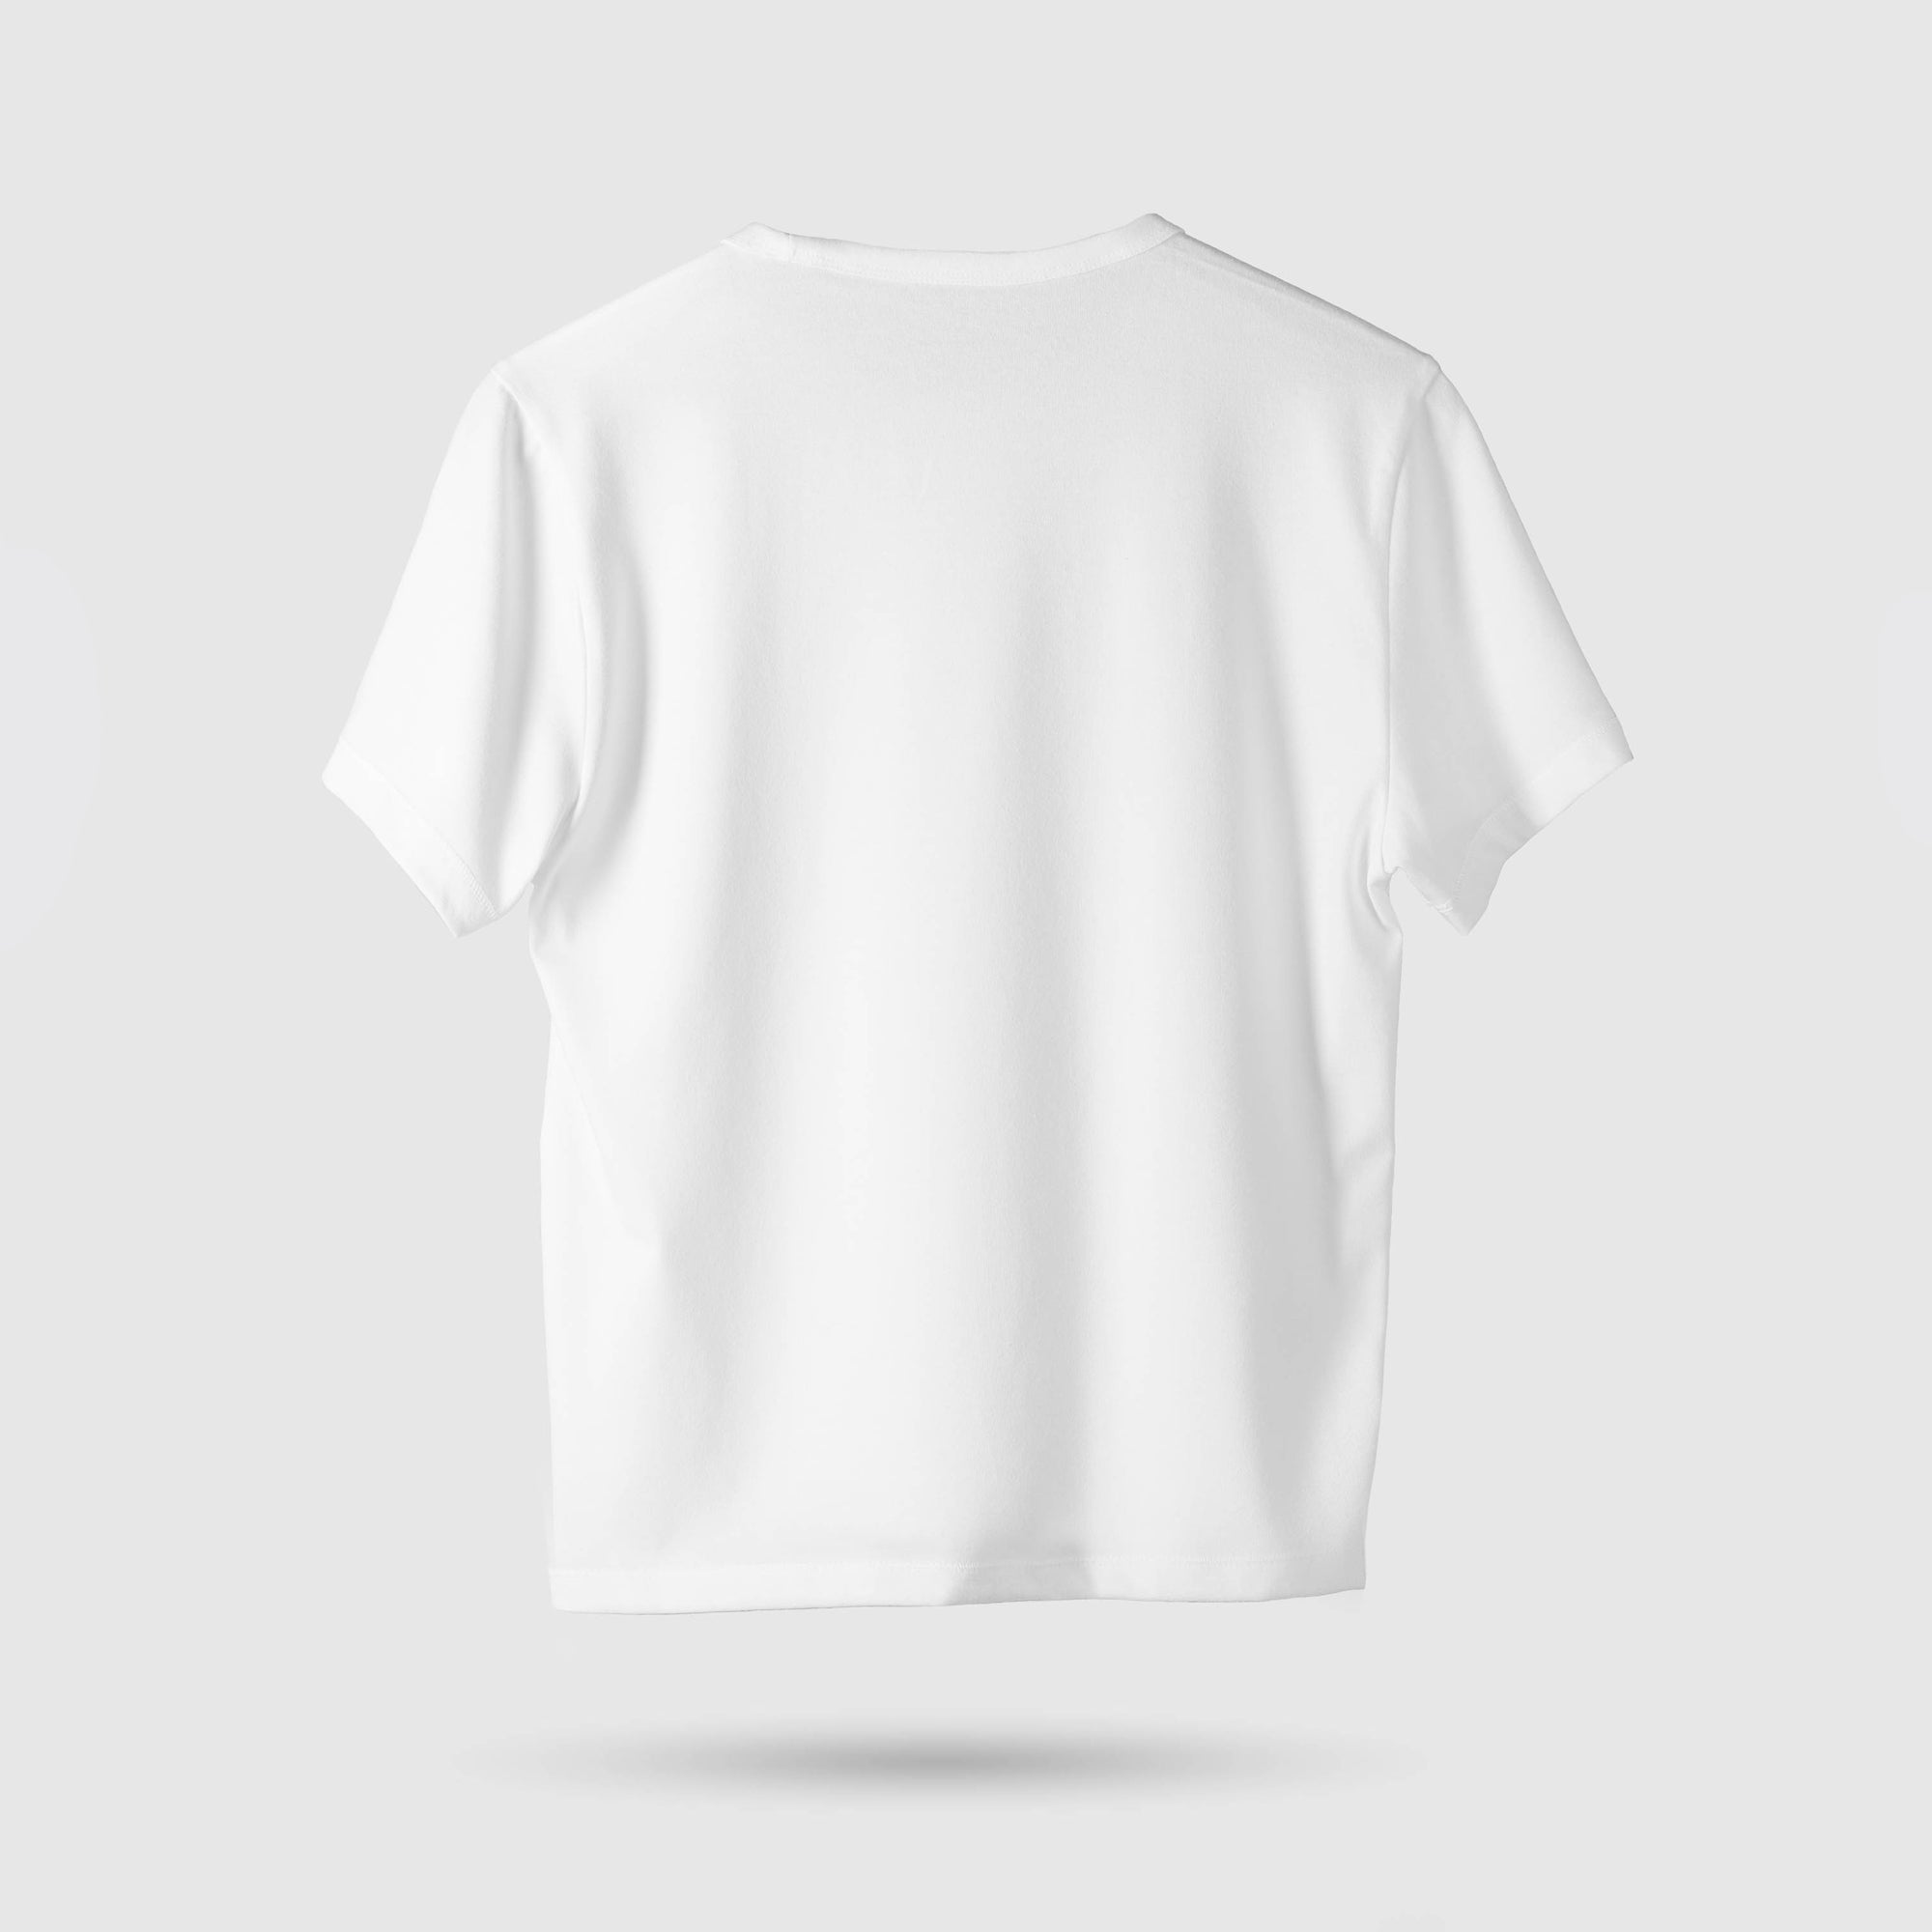 BRESSON T-SHIRT<br>WHITE